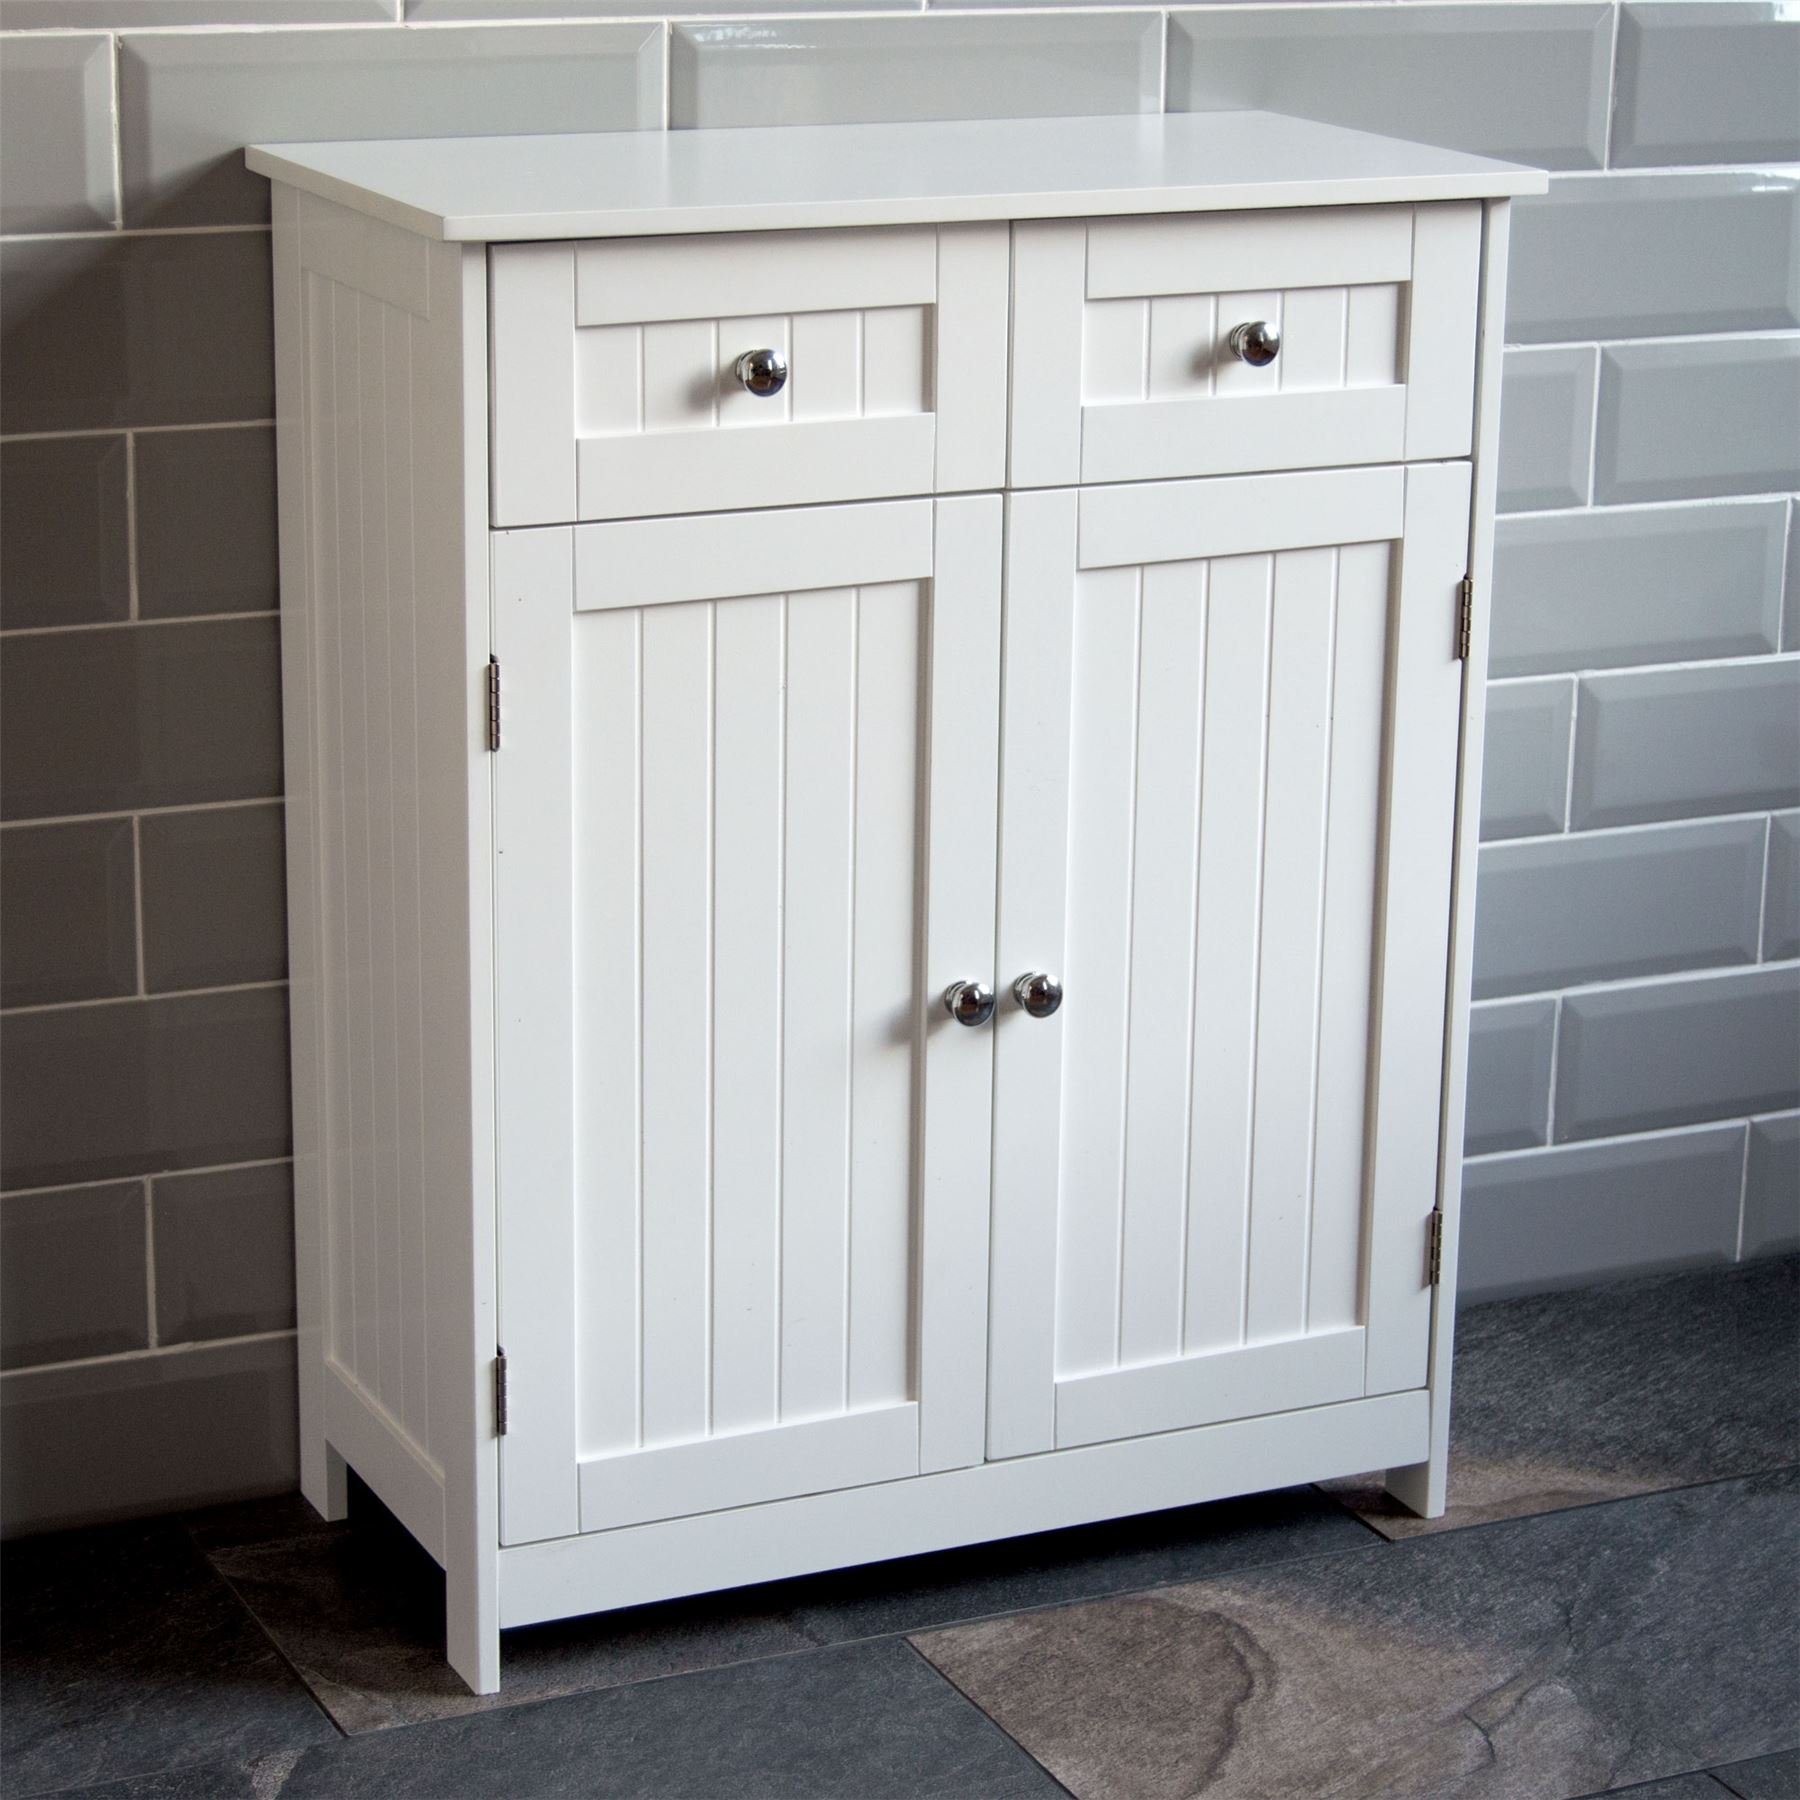 Priano bathroom cabinet 2 drawer 2 door storage cupboard for Bathroom furniture drawers